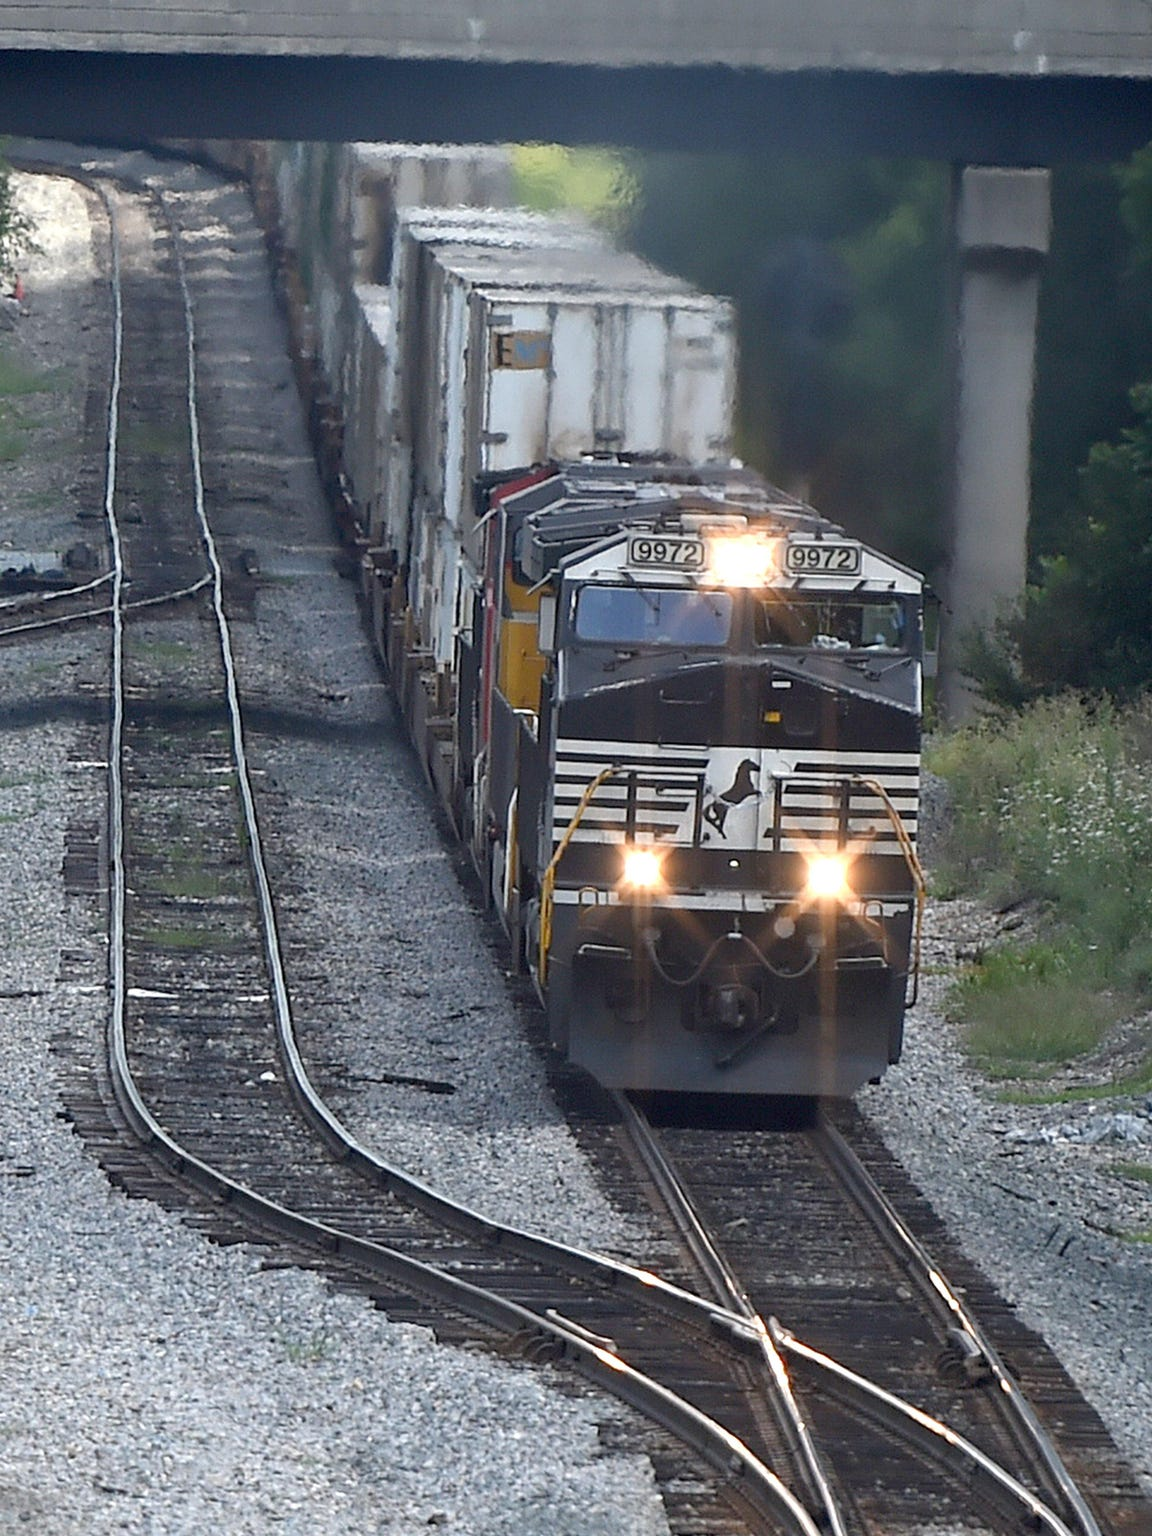 Wrong side of the tracks? A Norfolk Southern locomotive cruises towards the Commerce Avenue area Waynesboro on August 13, 2015. Nearby the tracks an economy of steel is springing up again, this time with classic car renovation and recycling, as well as organic chicken feed and a mini-high-tech corridor.